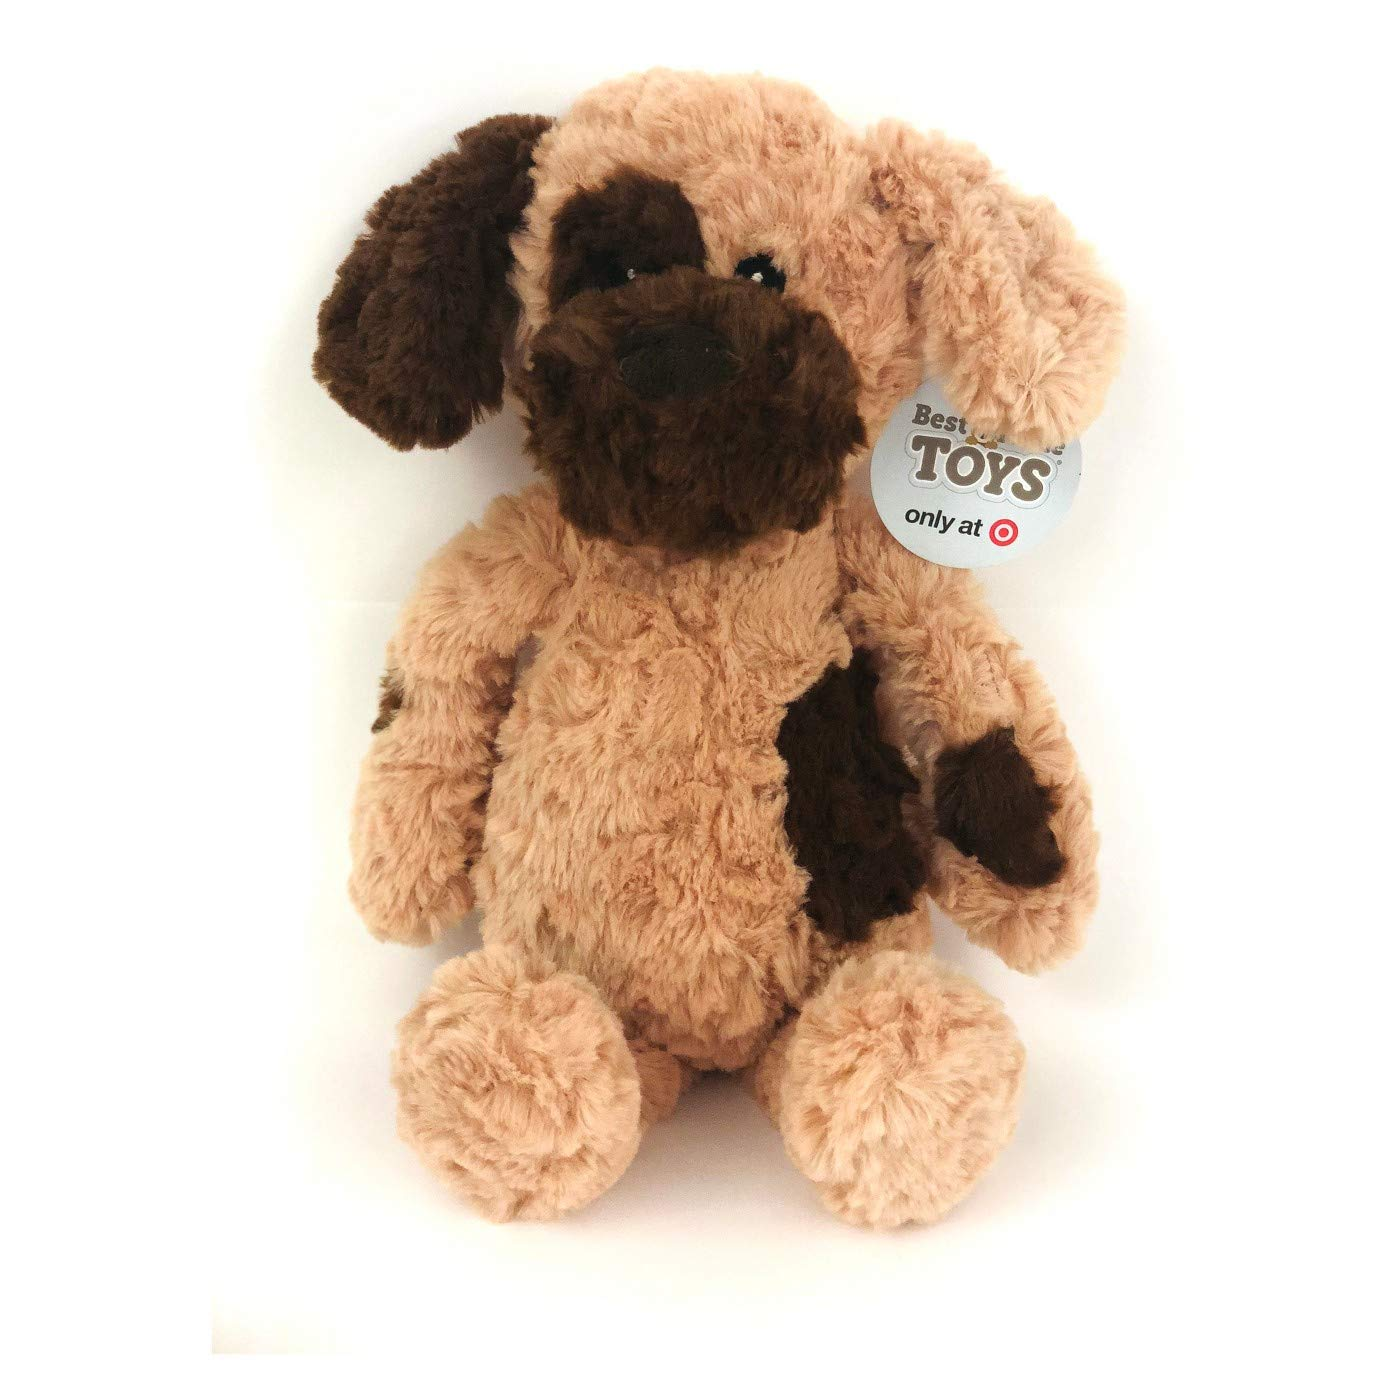 Best MadeToys 14 Plush Animal Puppy Dog Target Exclusive